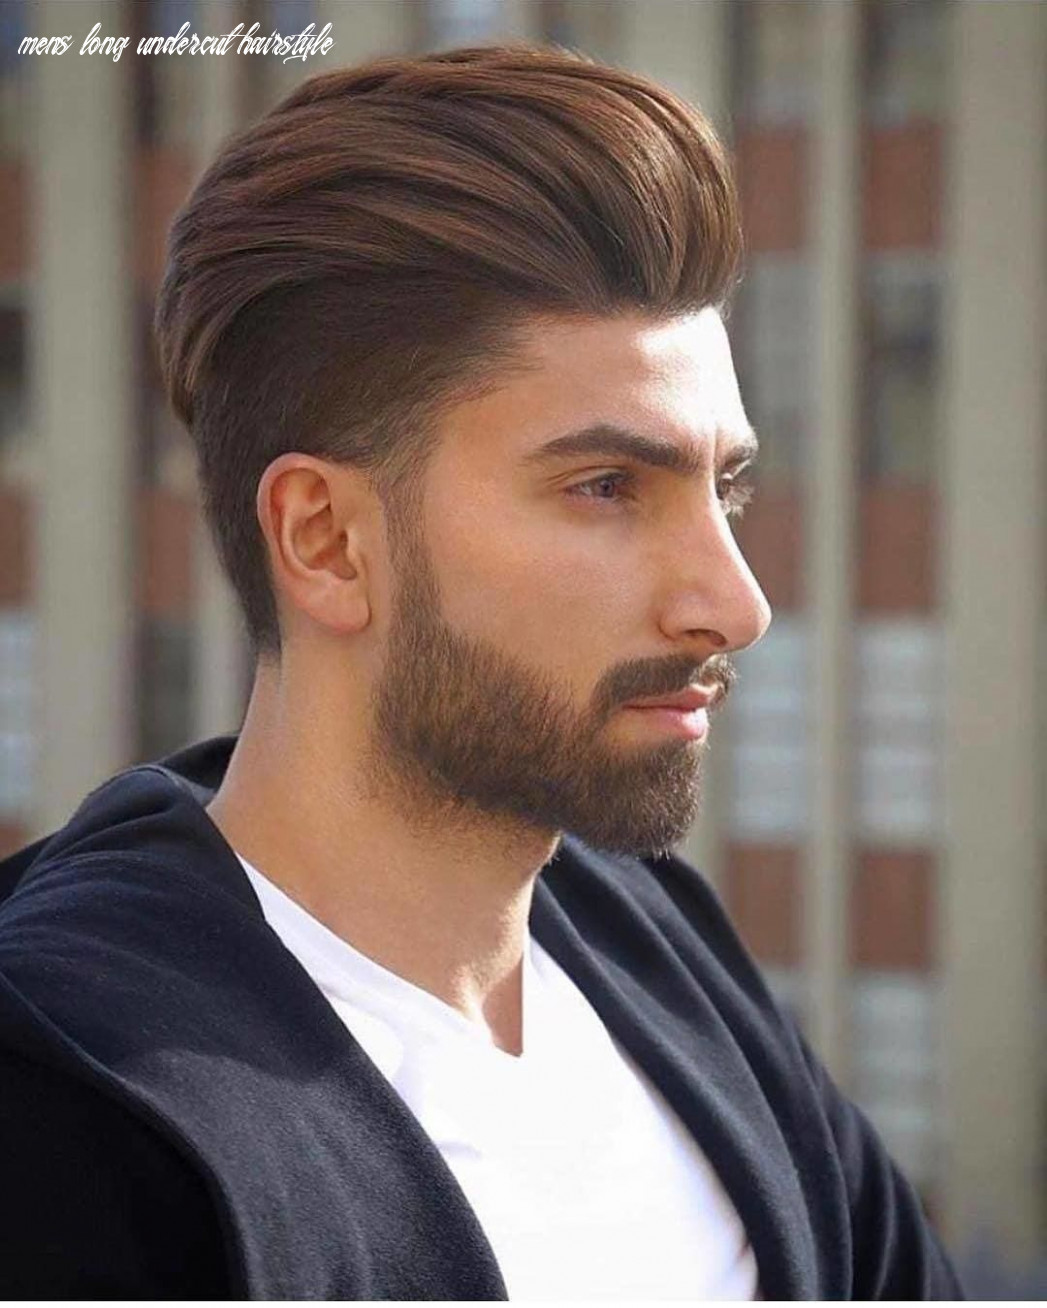 12 cool undercut hairstyles for men | undercut hairstyles, mens